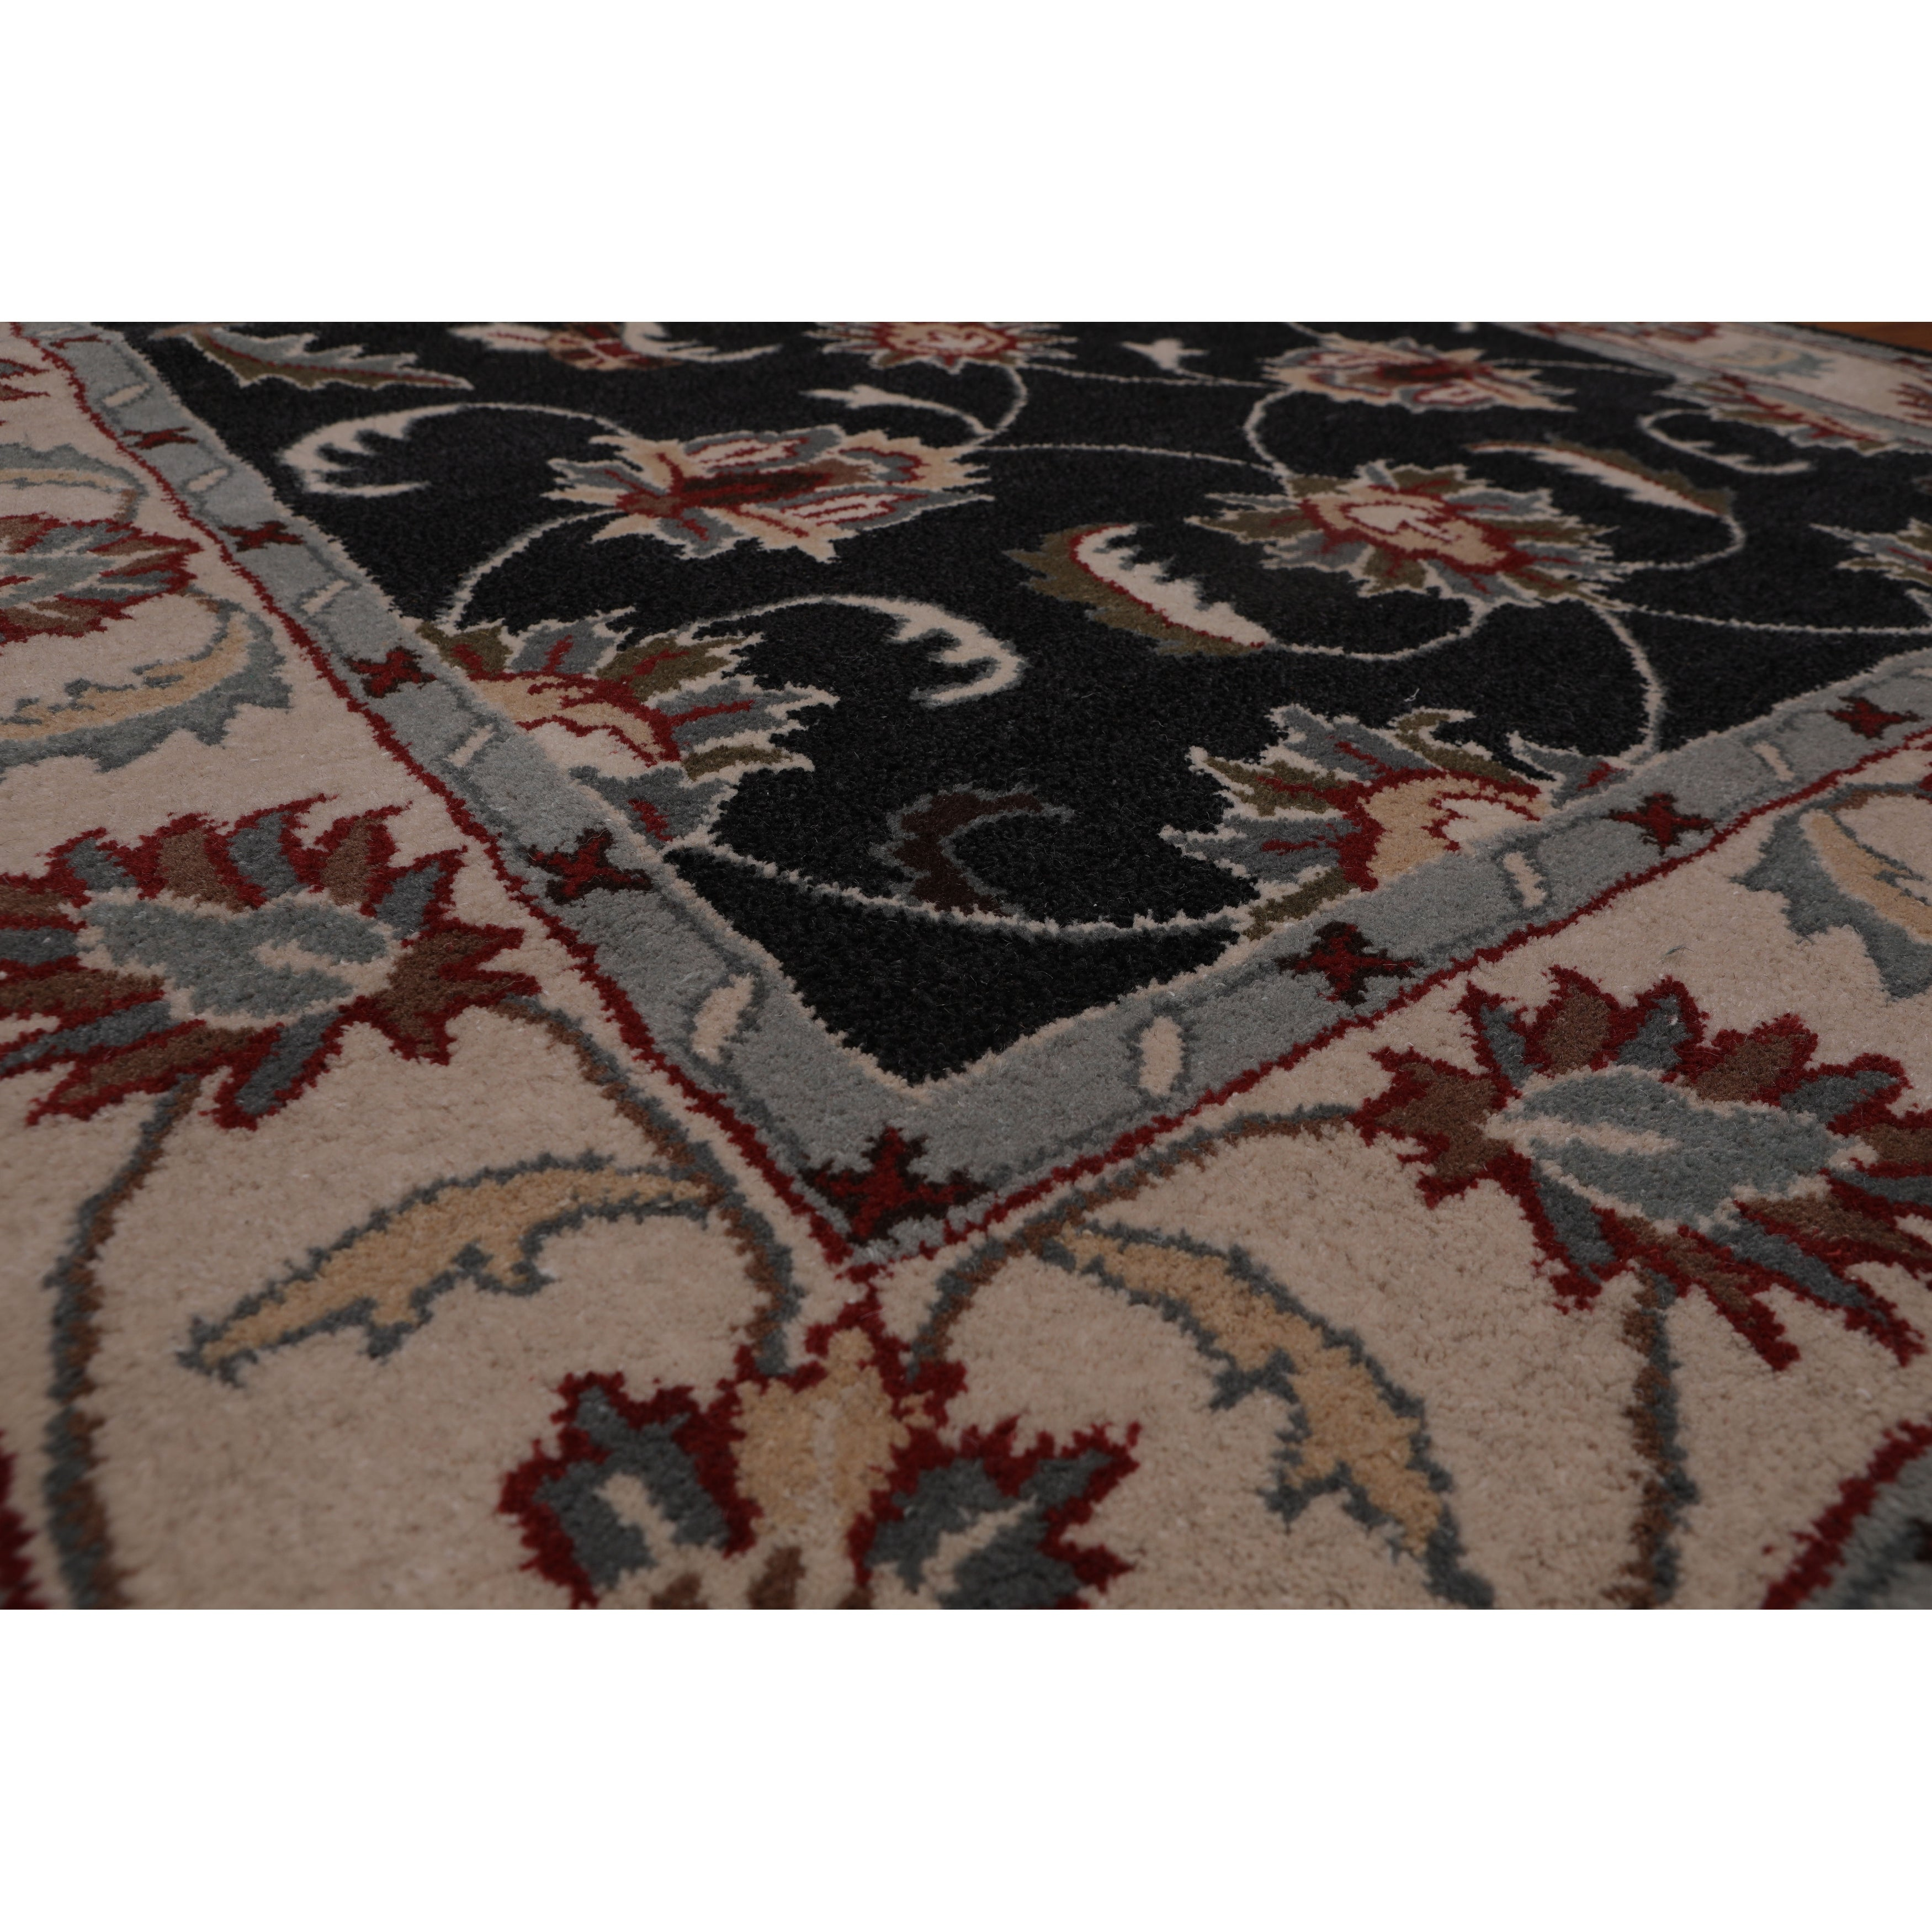 5 X8 Hand Tufted Wool Oriental Area Rug Charcoal Beige Color 5 X 8 On Sale Overstock 31310673